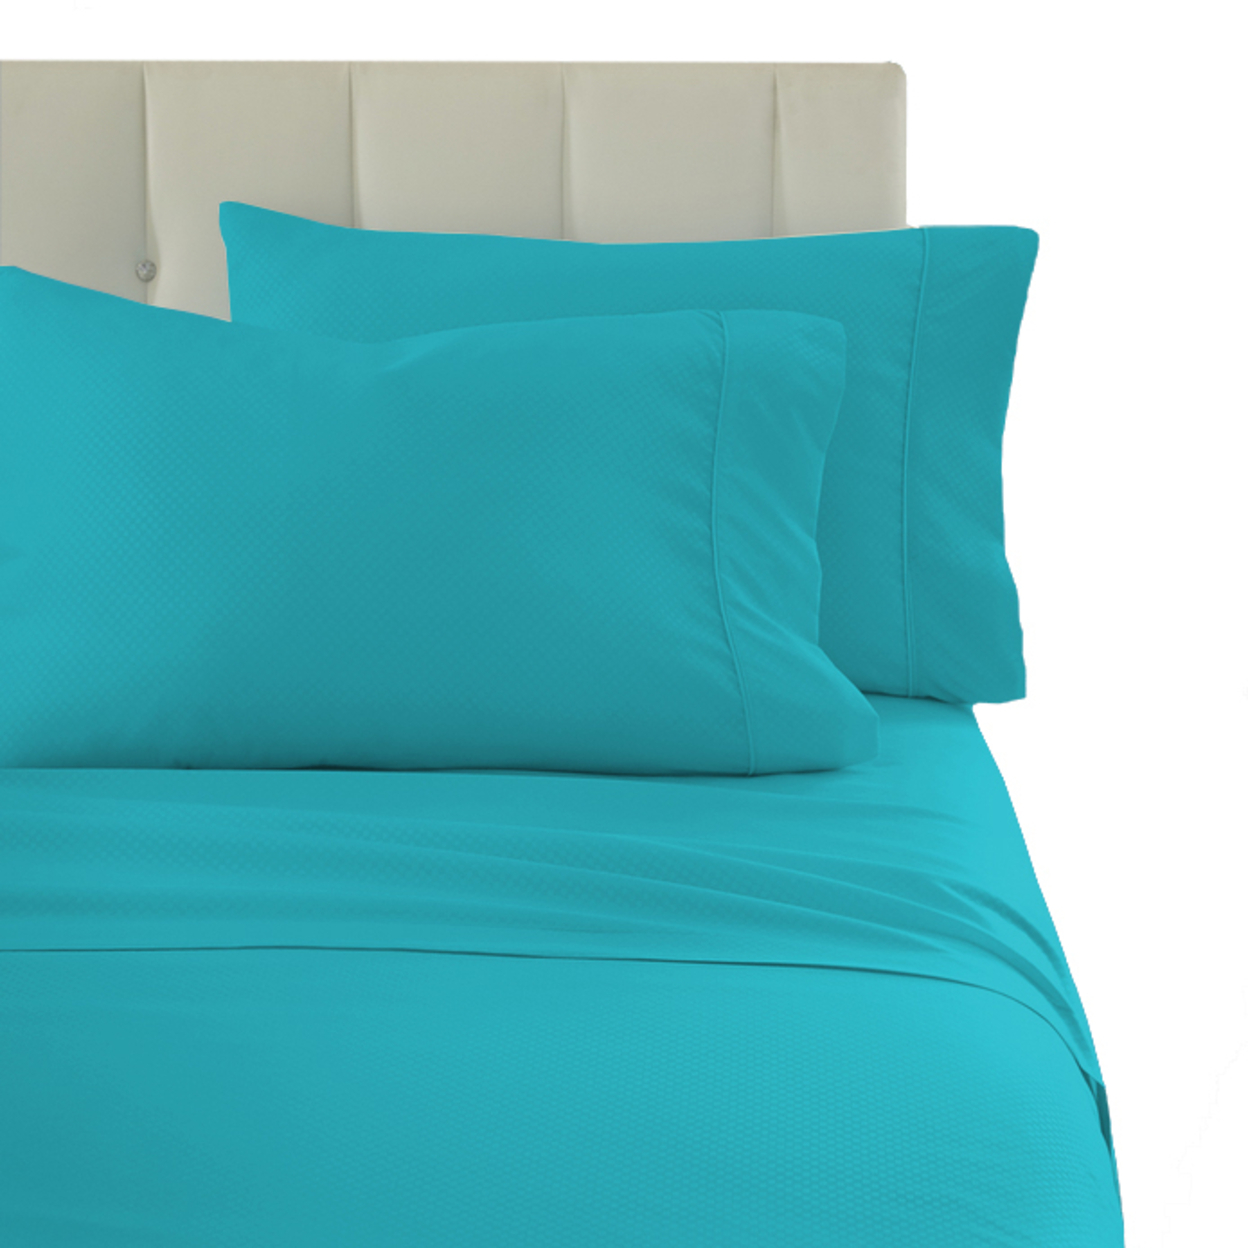 4 Piece Set: Premium Ultra-Soft Wrinkle Free Solid Bed Sheets – Twin, Lime